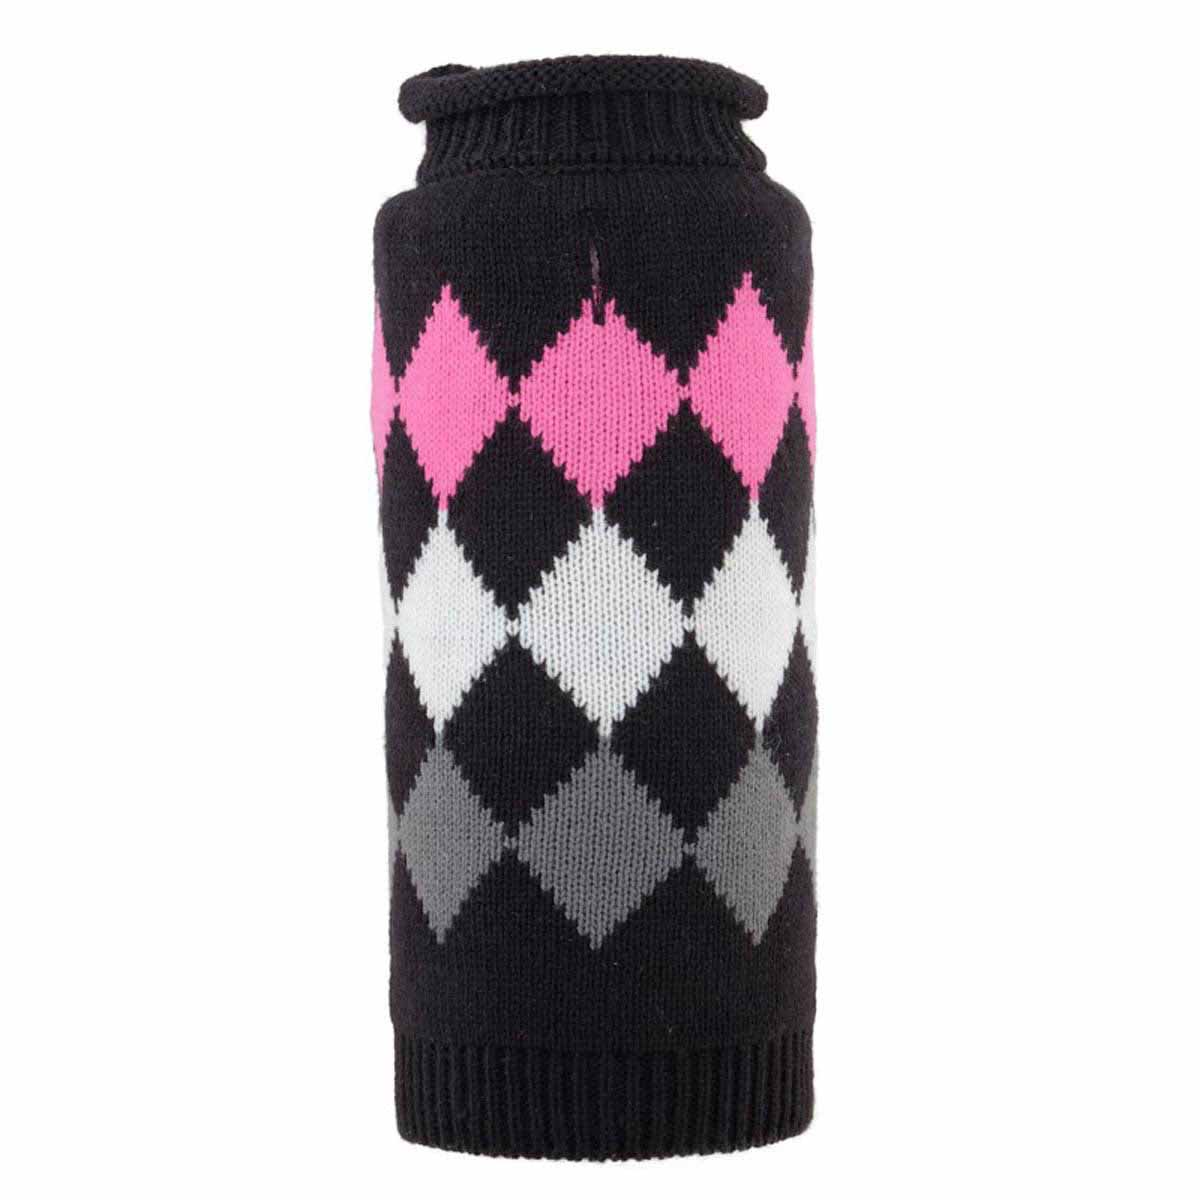 Worthy Dog Modern Argyle Dog Sweater - Black